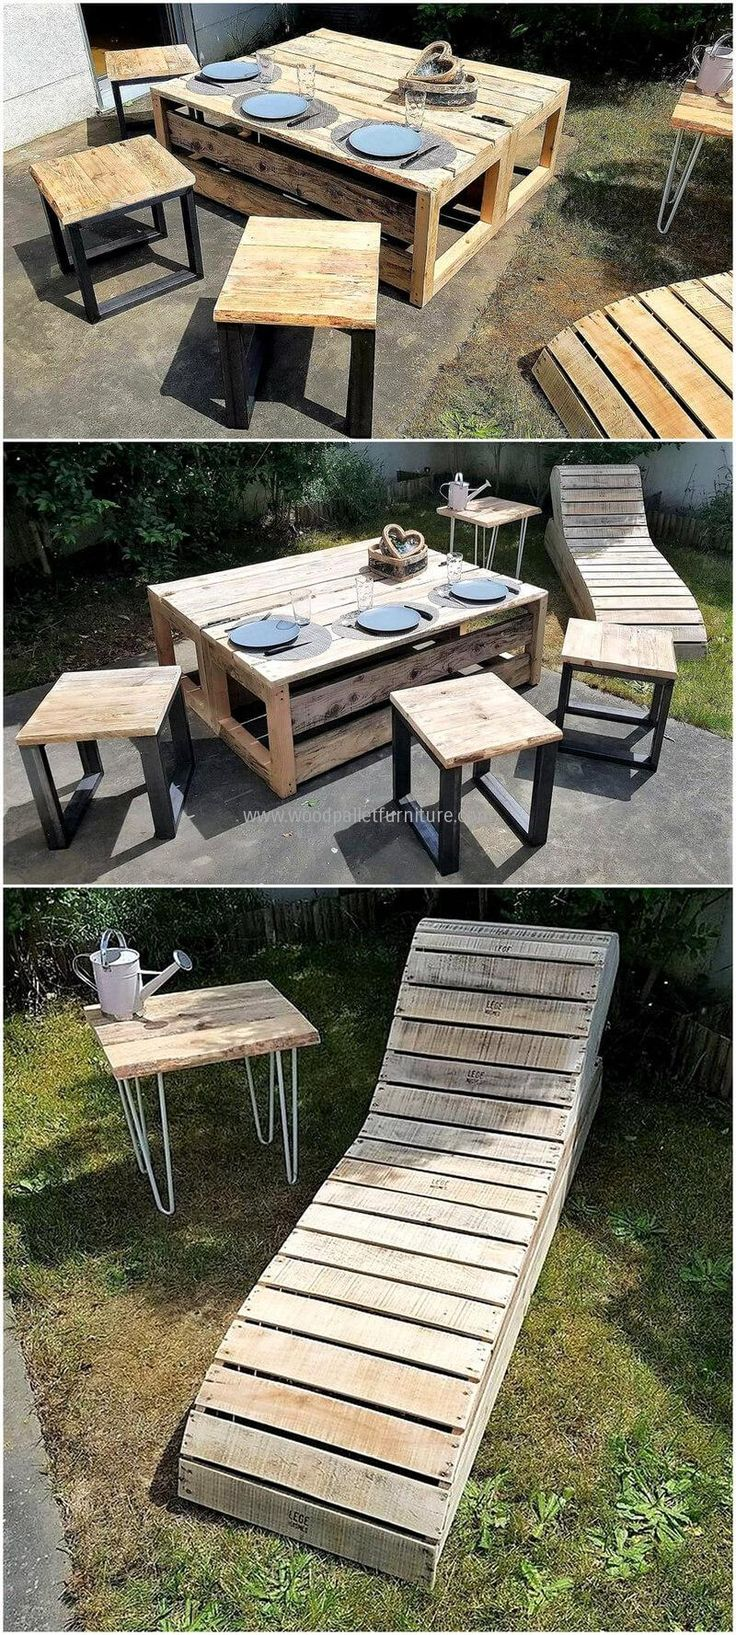 Follow These Amazing Wood Pallets Recycling Ideas